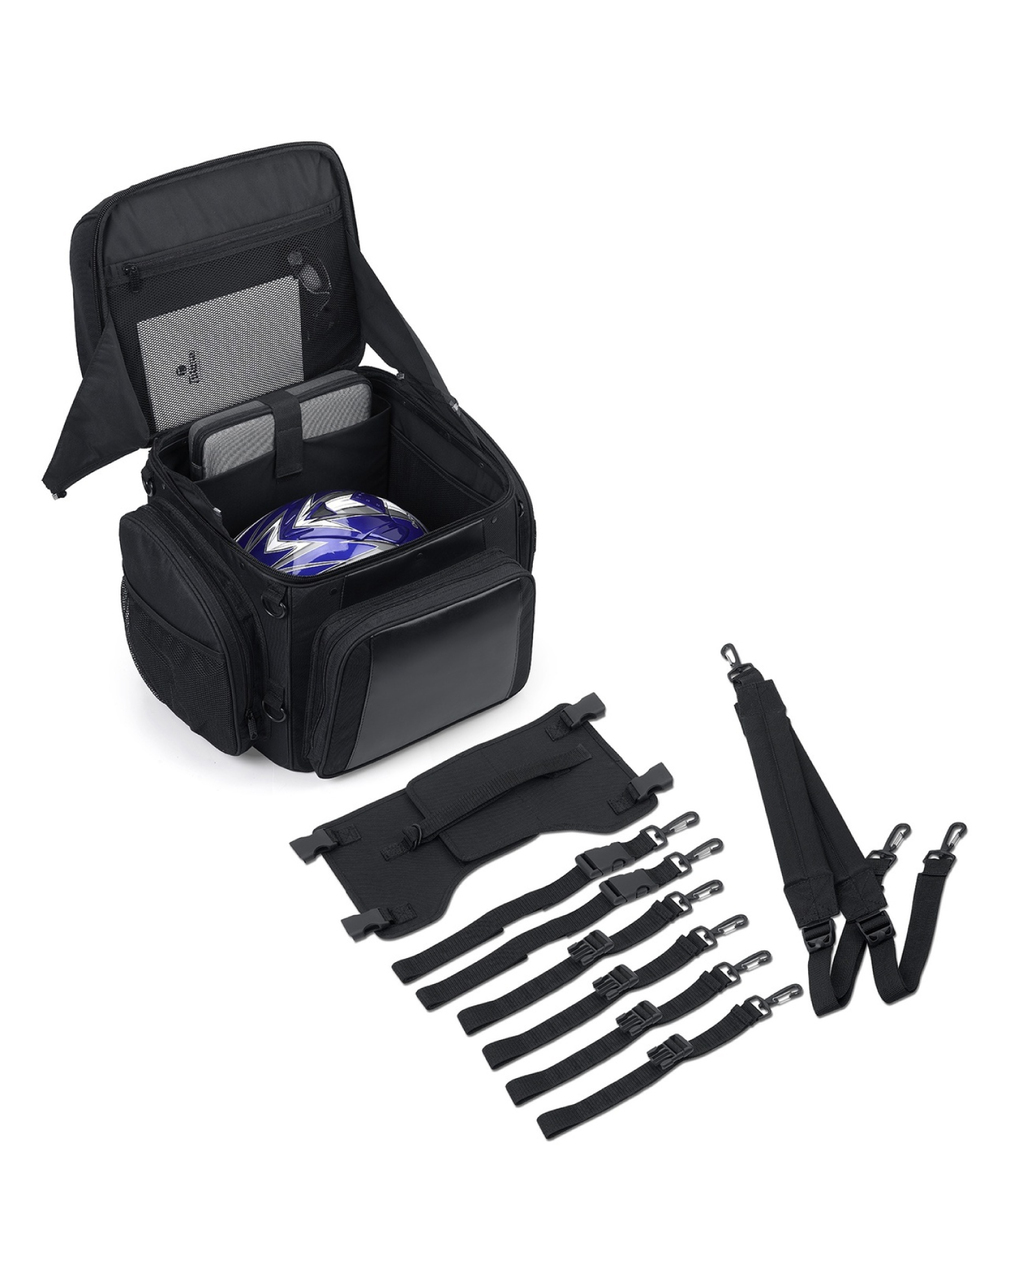 Large Back Rest Motorcycle Tail Bag (3150 cubic inches) Straps Set